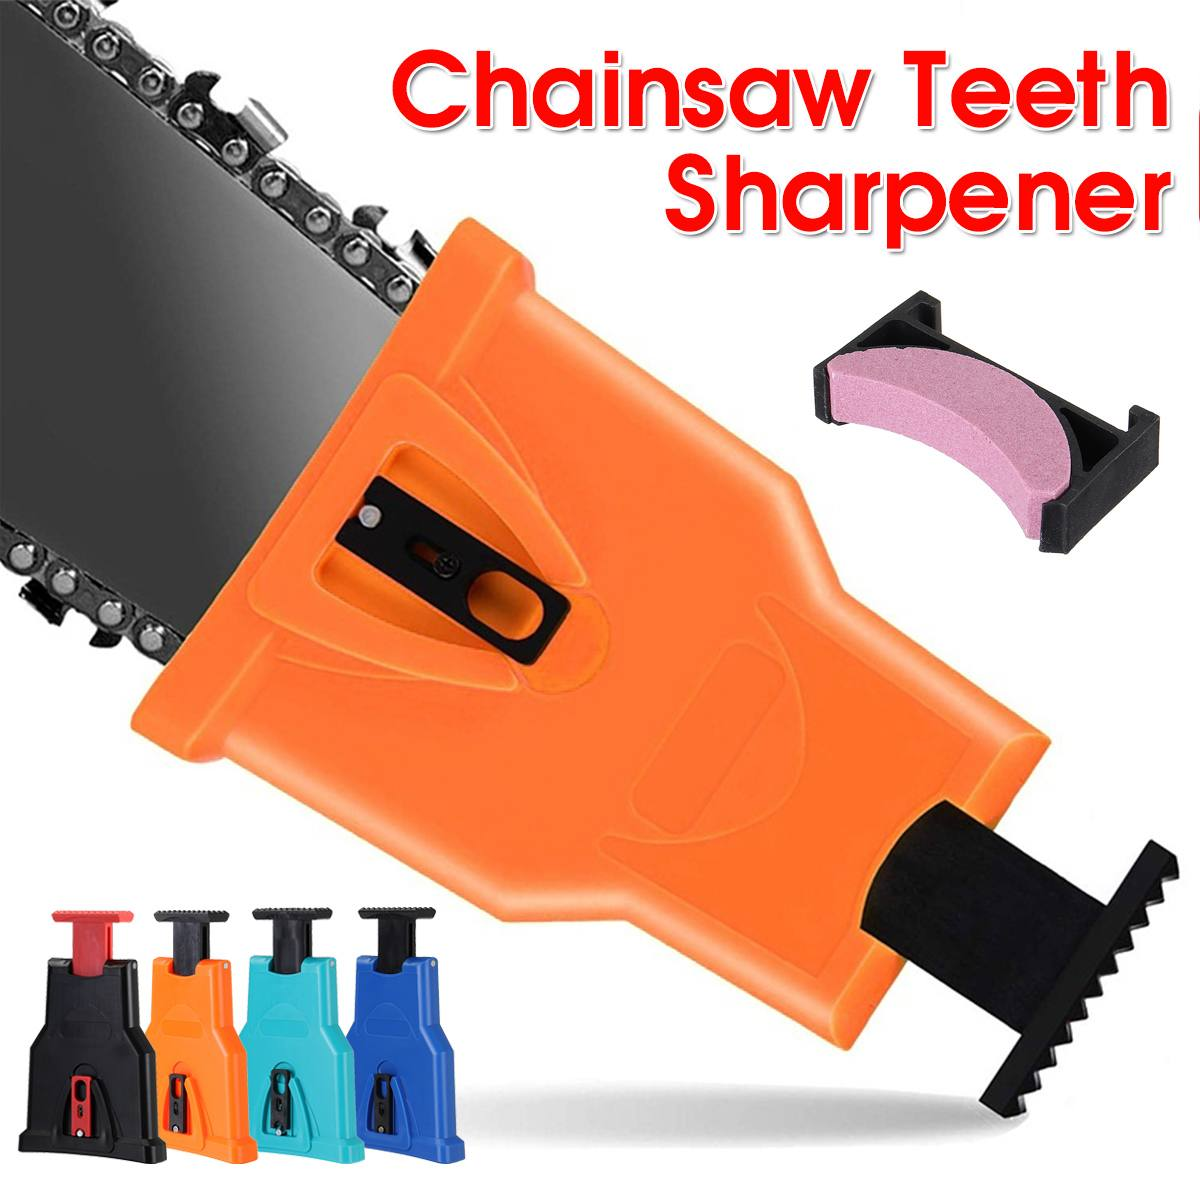 Chainsaw Teeths Sharpener Chain Saw Blade Sharpening Grinder Tool Power Bar Mount Saw Chain Sharpener Woodworking Tools